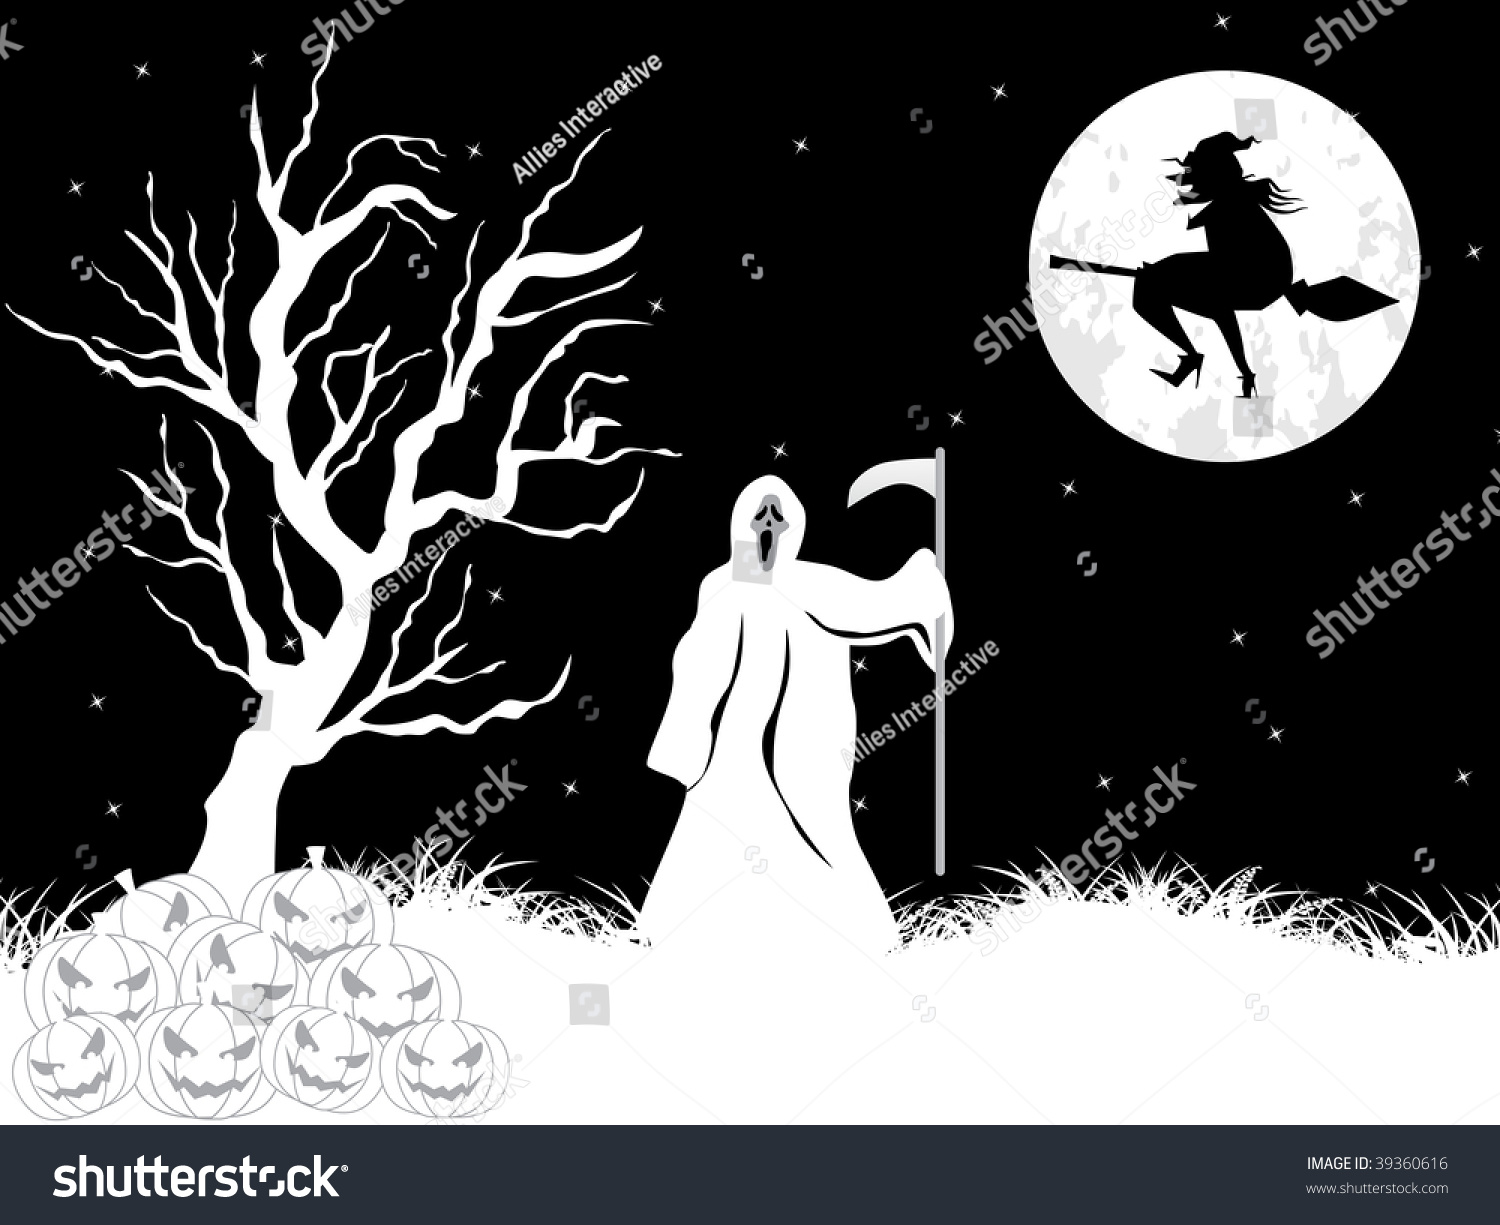 Abstract Black White Halloween Background Vector Stock Vector Royalty Free 39360616